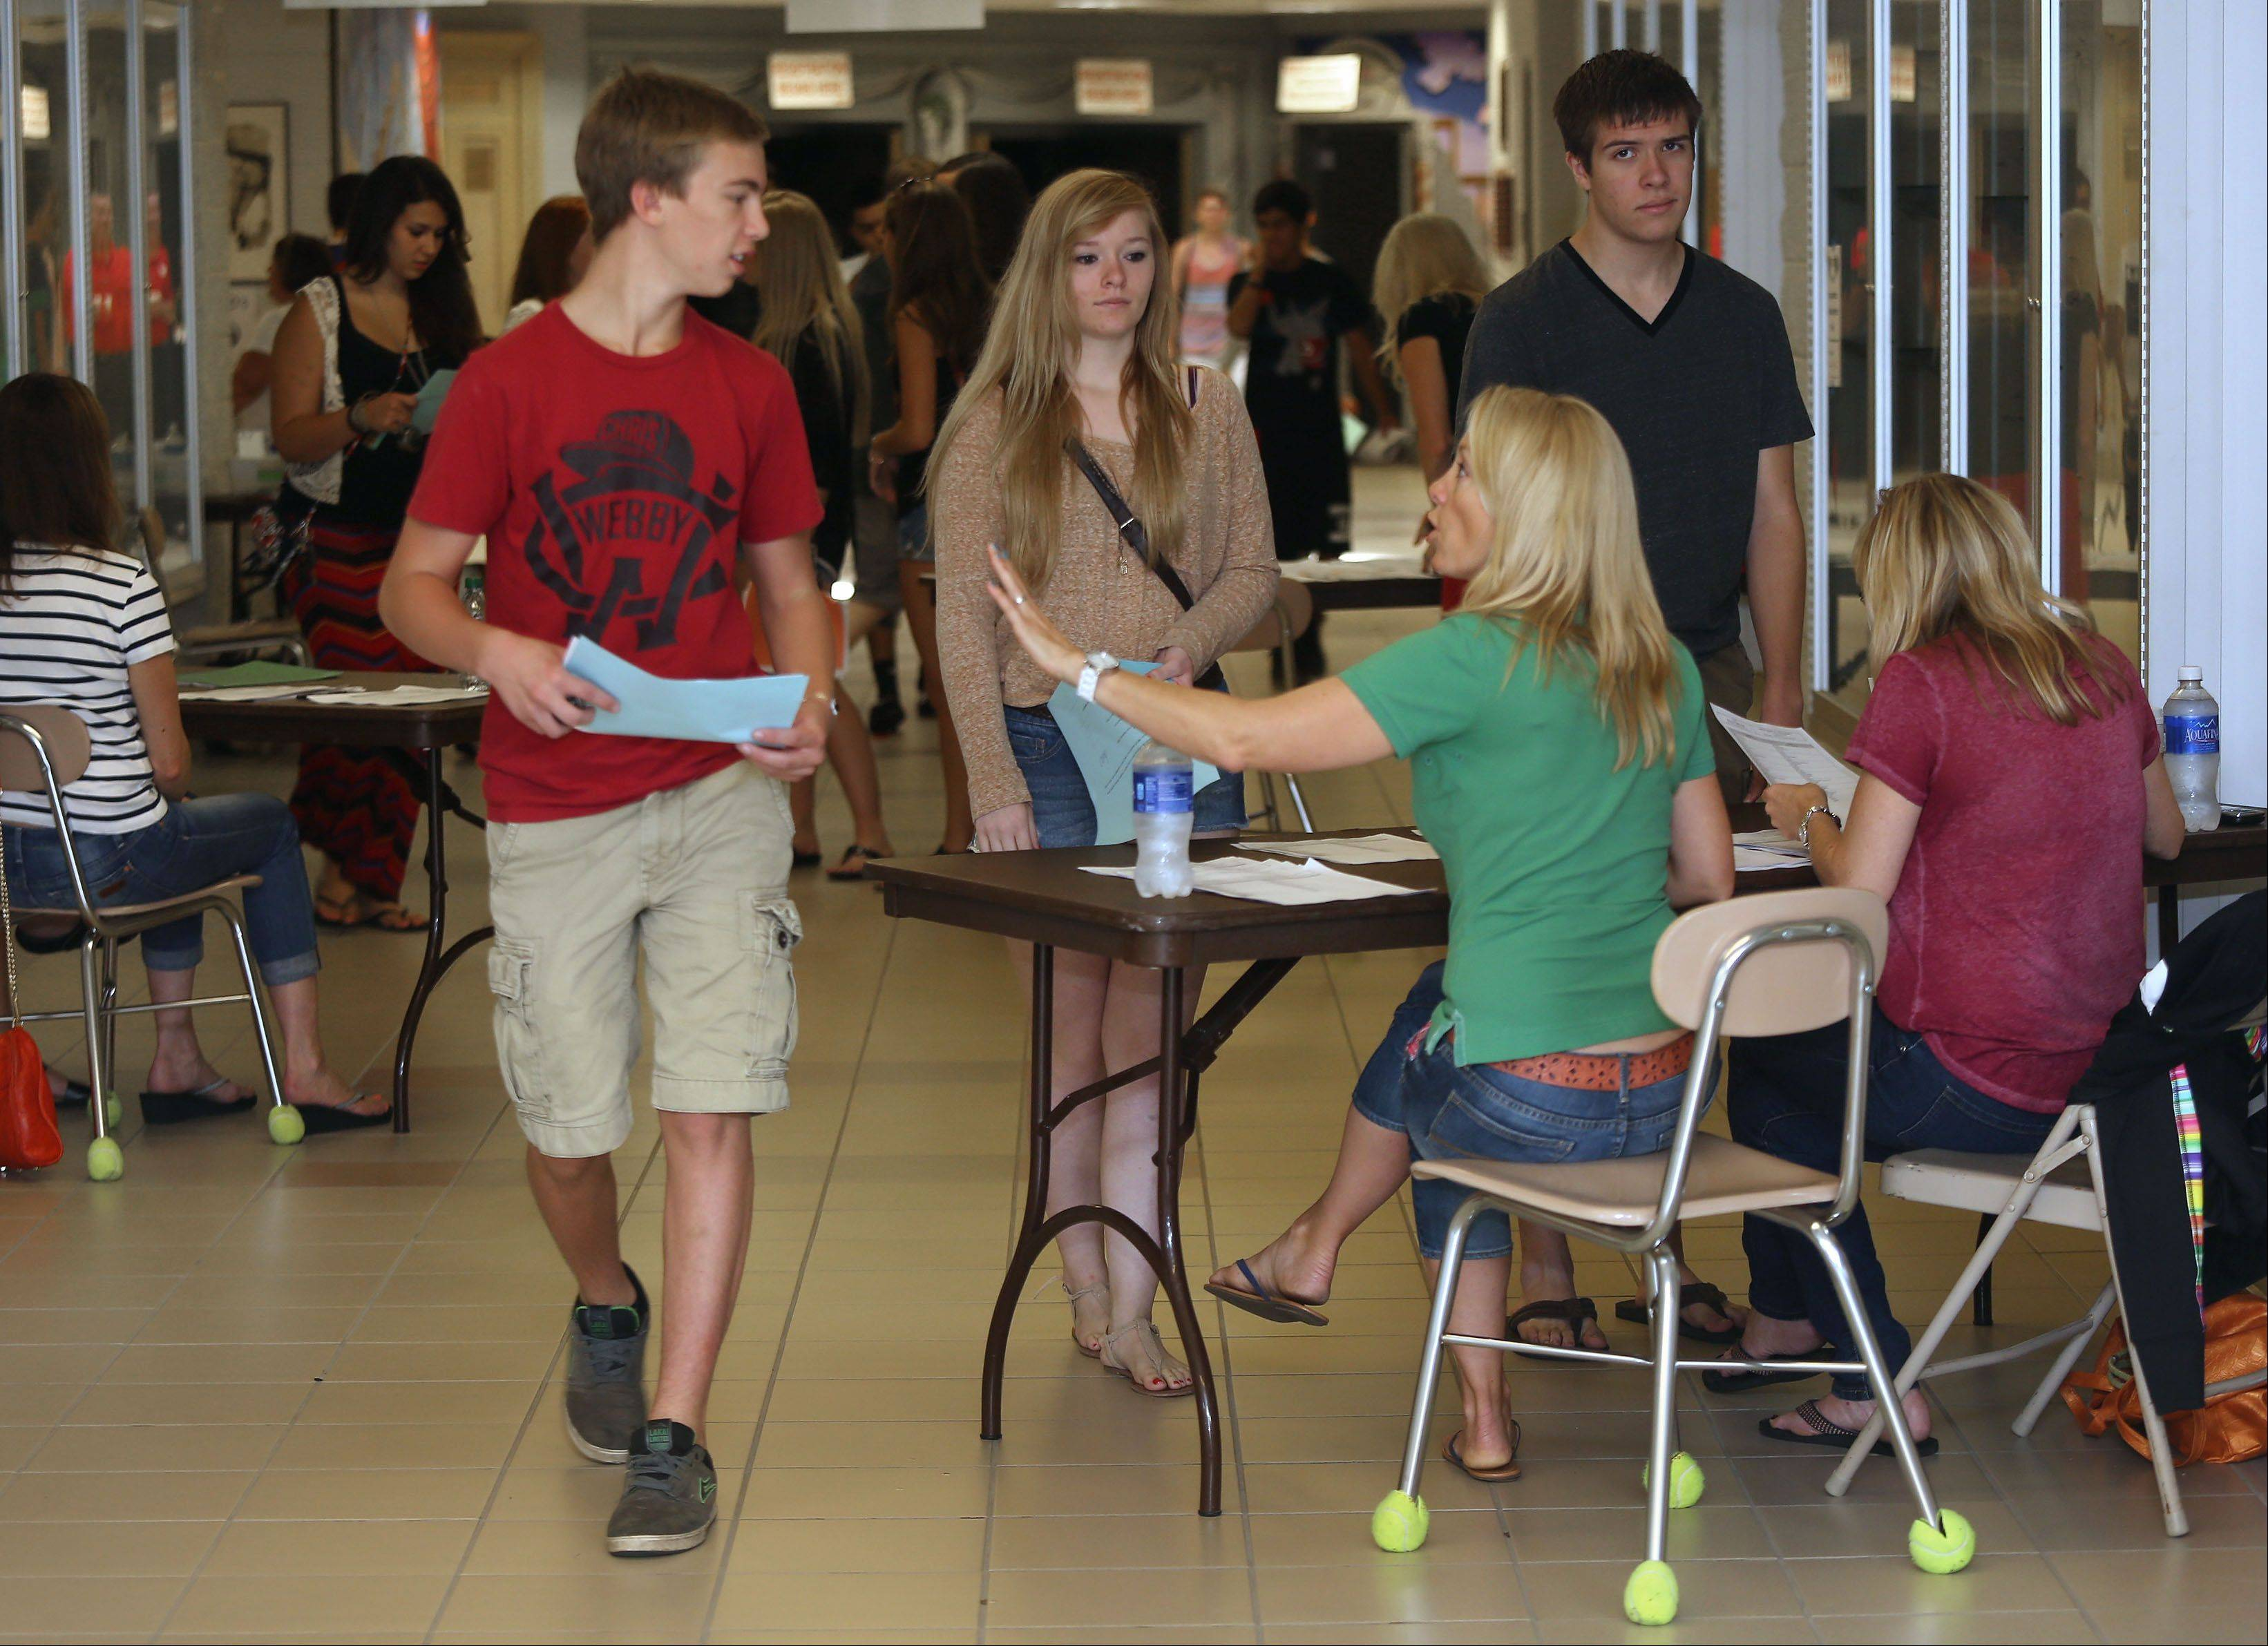 Junior Gunnar Samuelson is directed to where he picks up his ID after receiving his schedule from volunteer Hollie Free during recent registration activities at Barrington High School, where high school registration fees are $216.